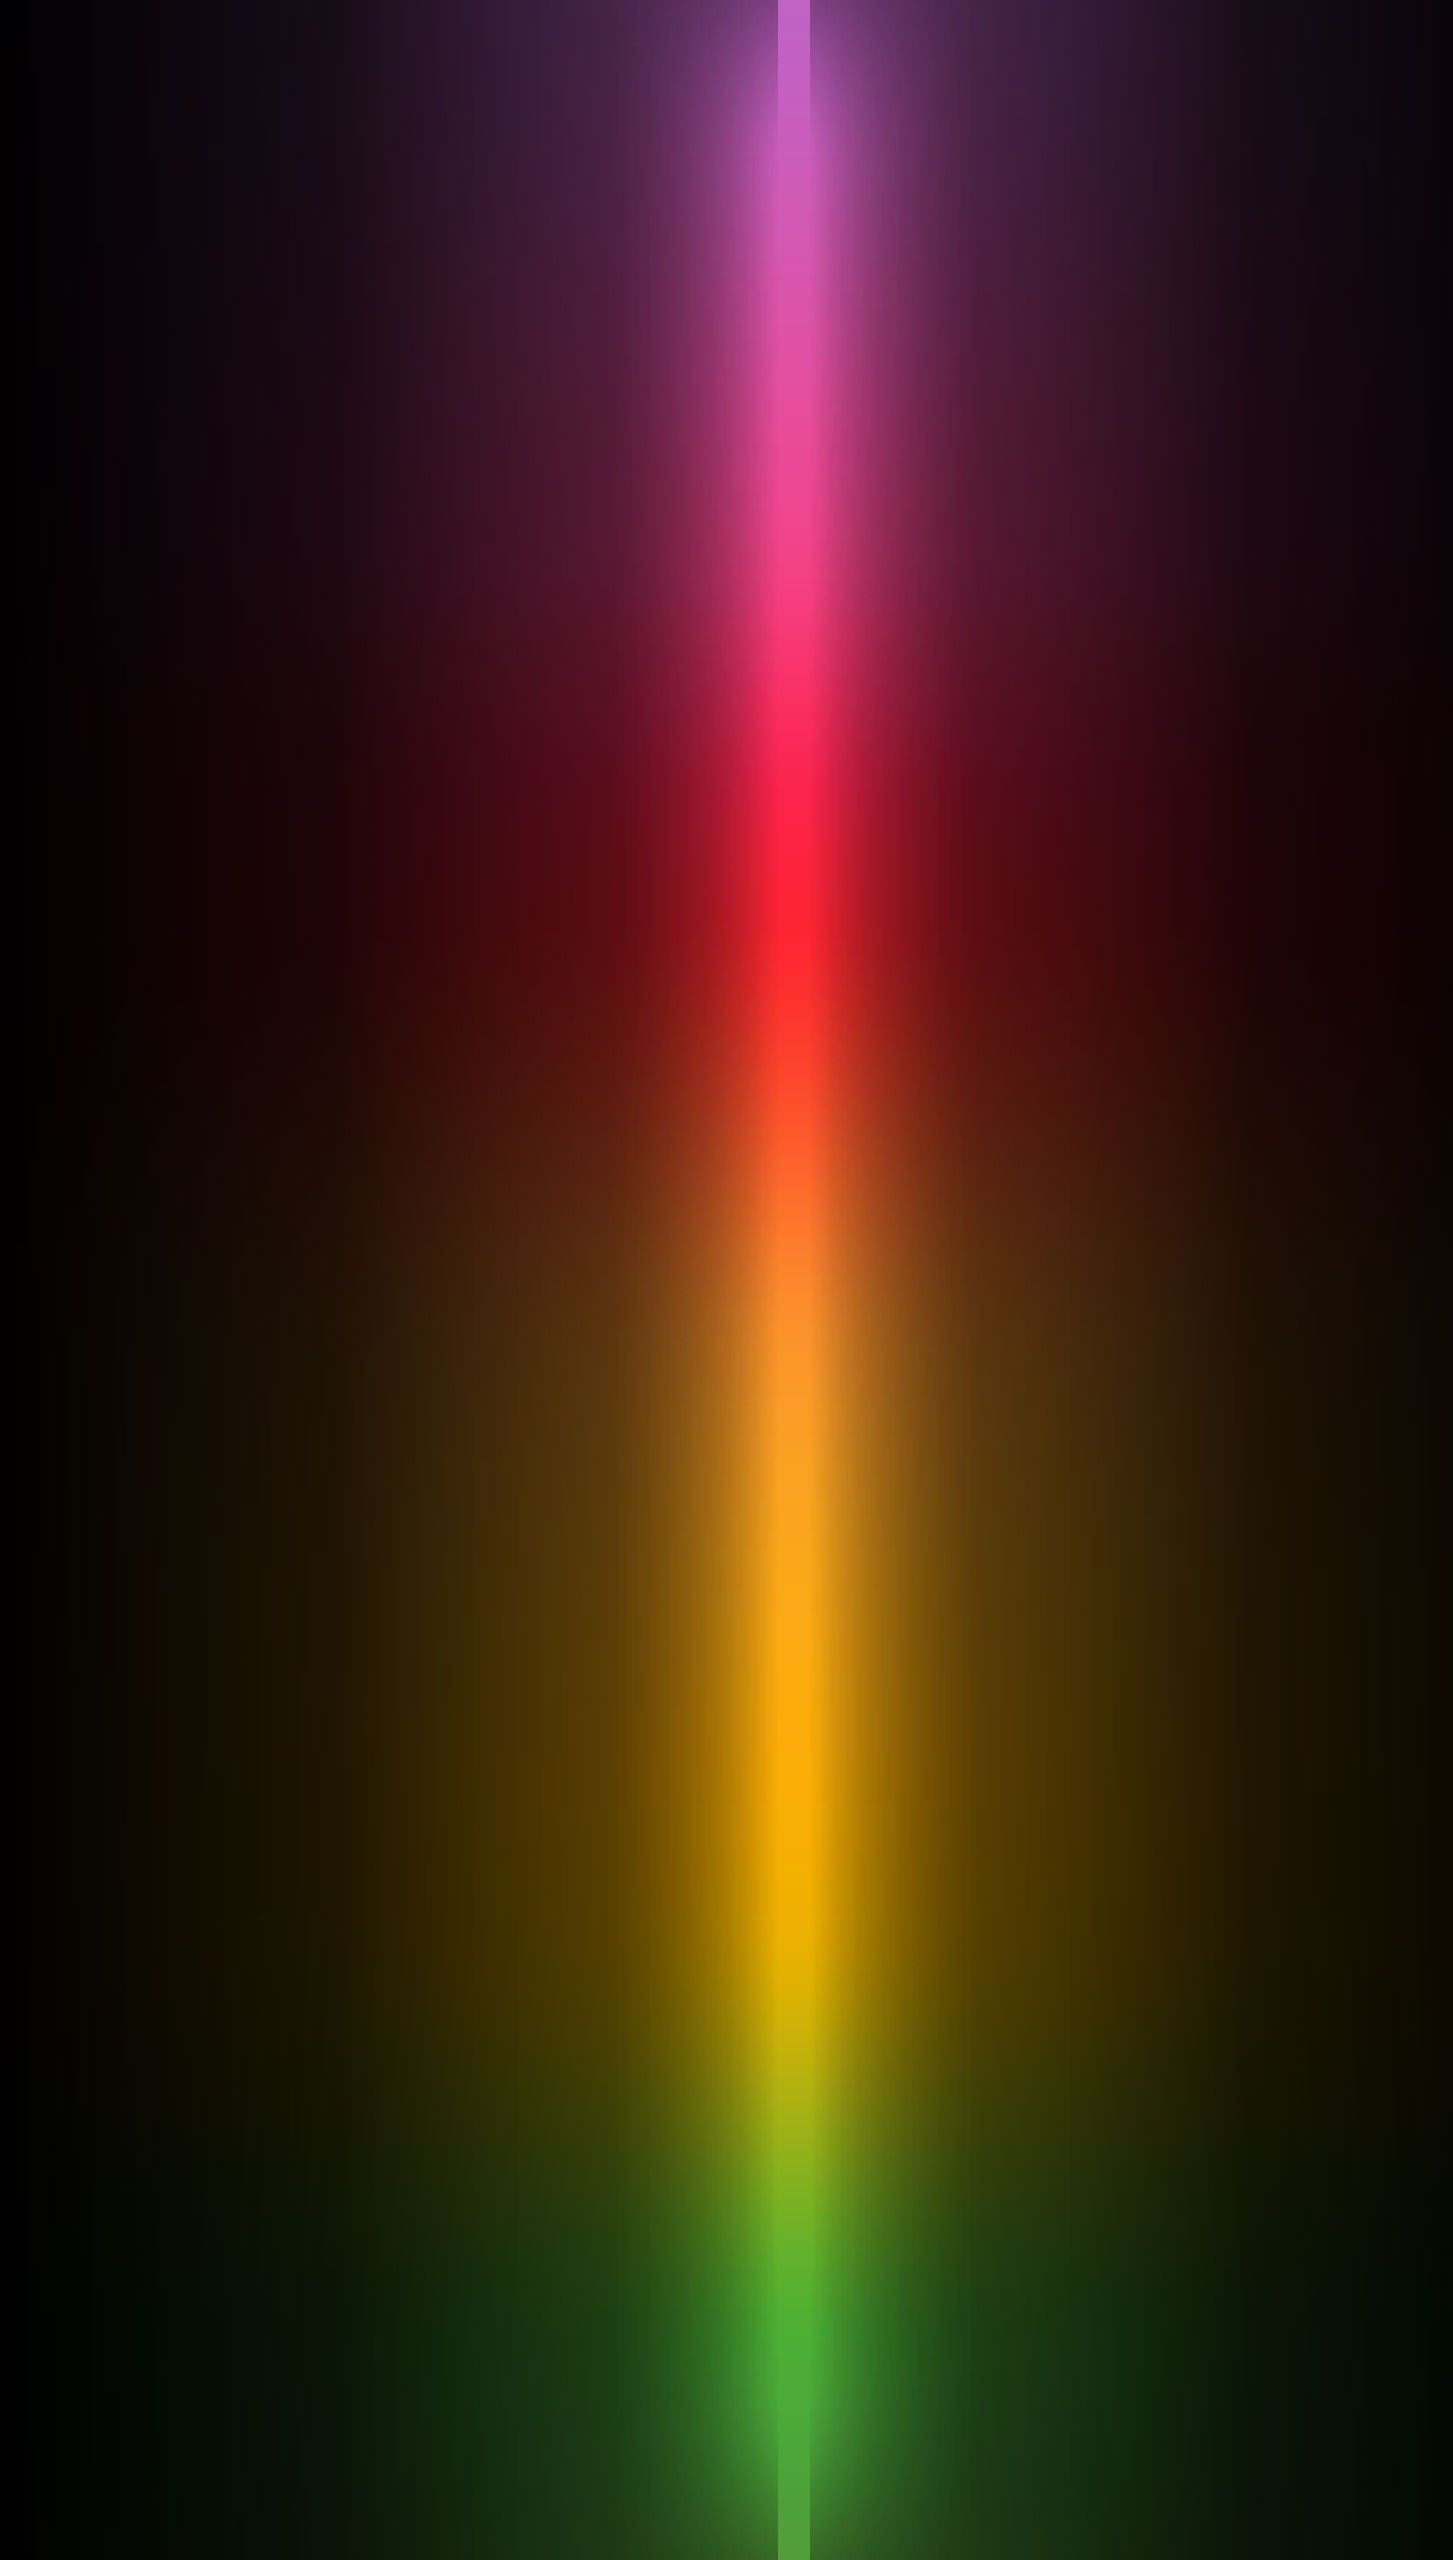 Rainbow Gradient Abstract Wallpaper Phone wallpaper images 1453x2560